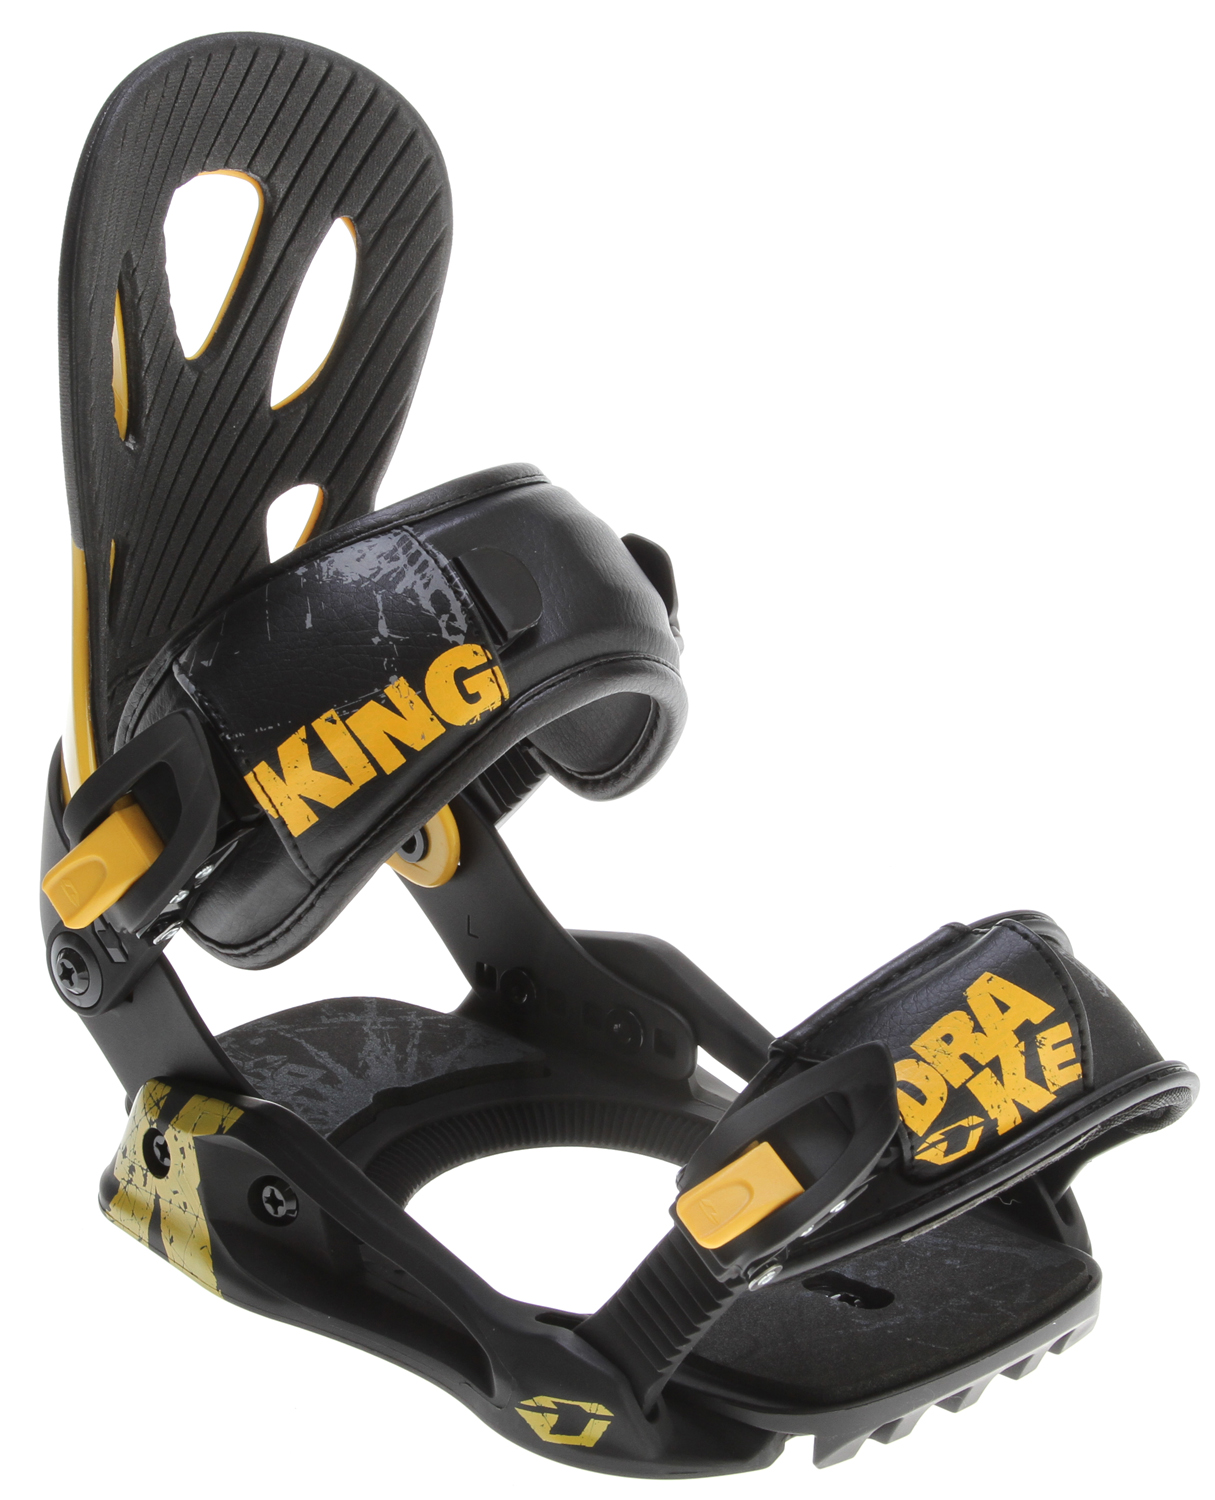 Snowboard All you need is the KING, a solid entry level men's binding that assures great performance and high quality.  The KING is perfect for starving riders, who want to reach higher levels of riding thanks to its lightness and flexibility, despite their low budget. The Contour highback is a perfect fit to our boots while the MFC ankle and convertible toe strap assure a better grip and foot hold adding to an already comfortable and permissive binding. The KING blends the best binding basics with a good set of technological features, such as the MAC 4 buckles or comfortable DELTA baseplate, at half the cost of other bindings, so don't wait (again . buy it! DO IT!!Key Features of the Drake King Snowboard Bindings:  Delta baseplate  Impulse toe ramp interface  Eva heelpad dampering  Contour Highback  MFC Ankle strap  MFC Convertible toe straps  MAC 4 buckles  Classic Disc - $77.95